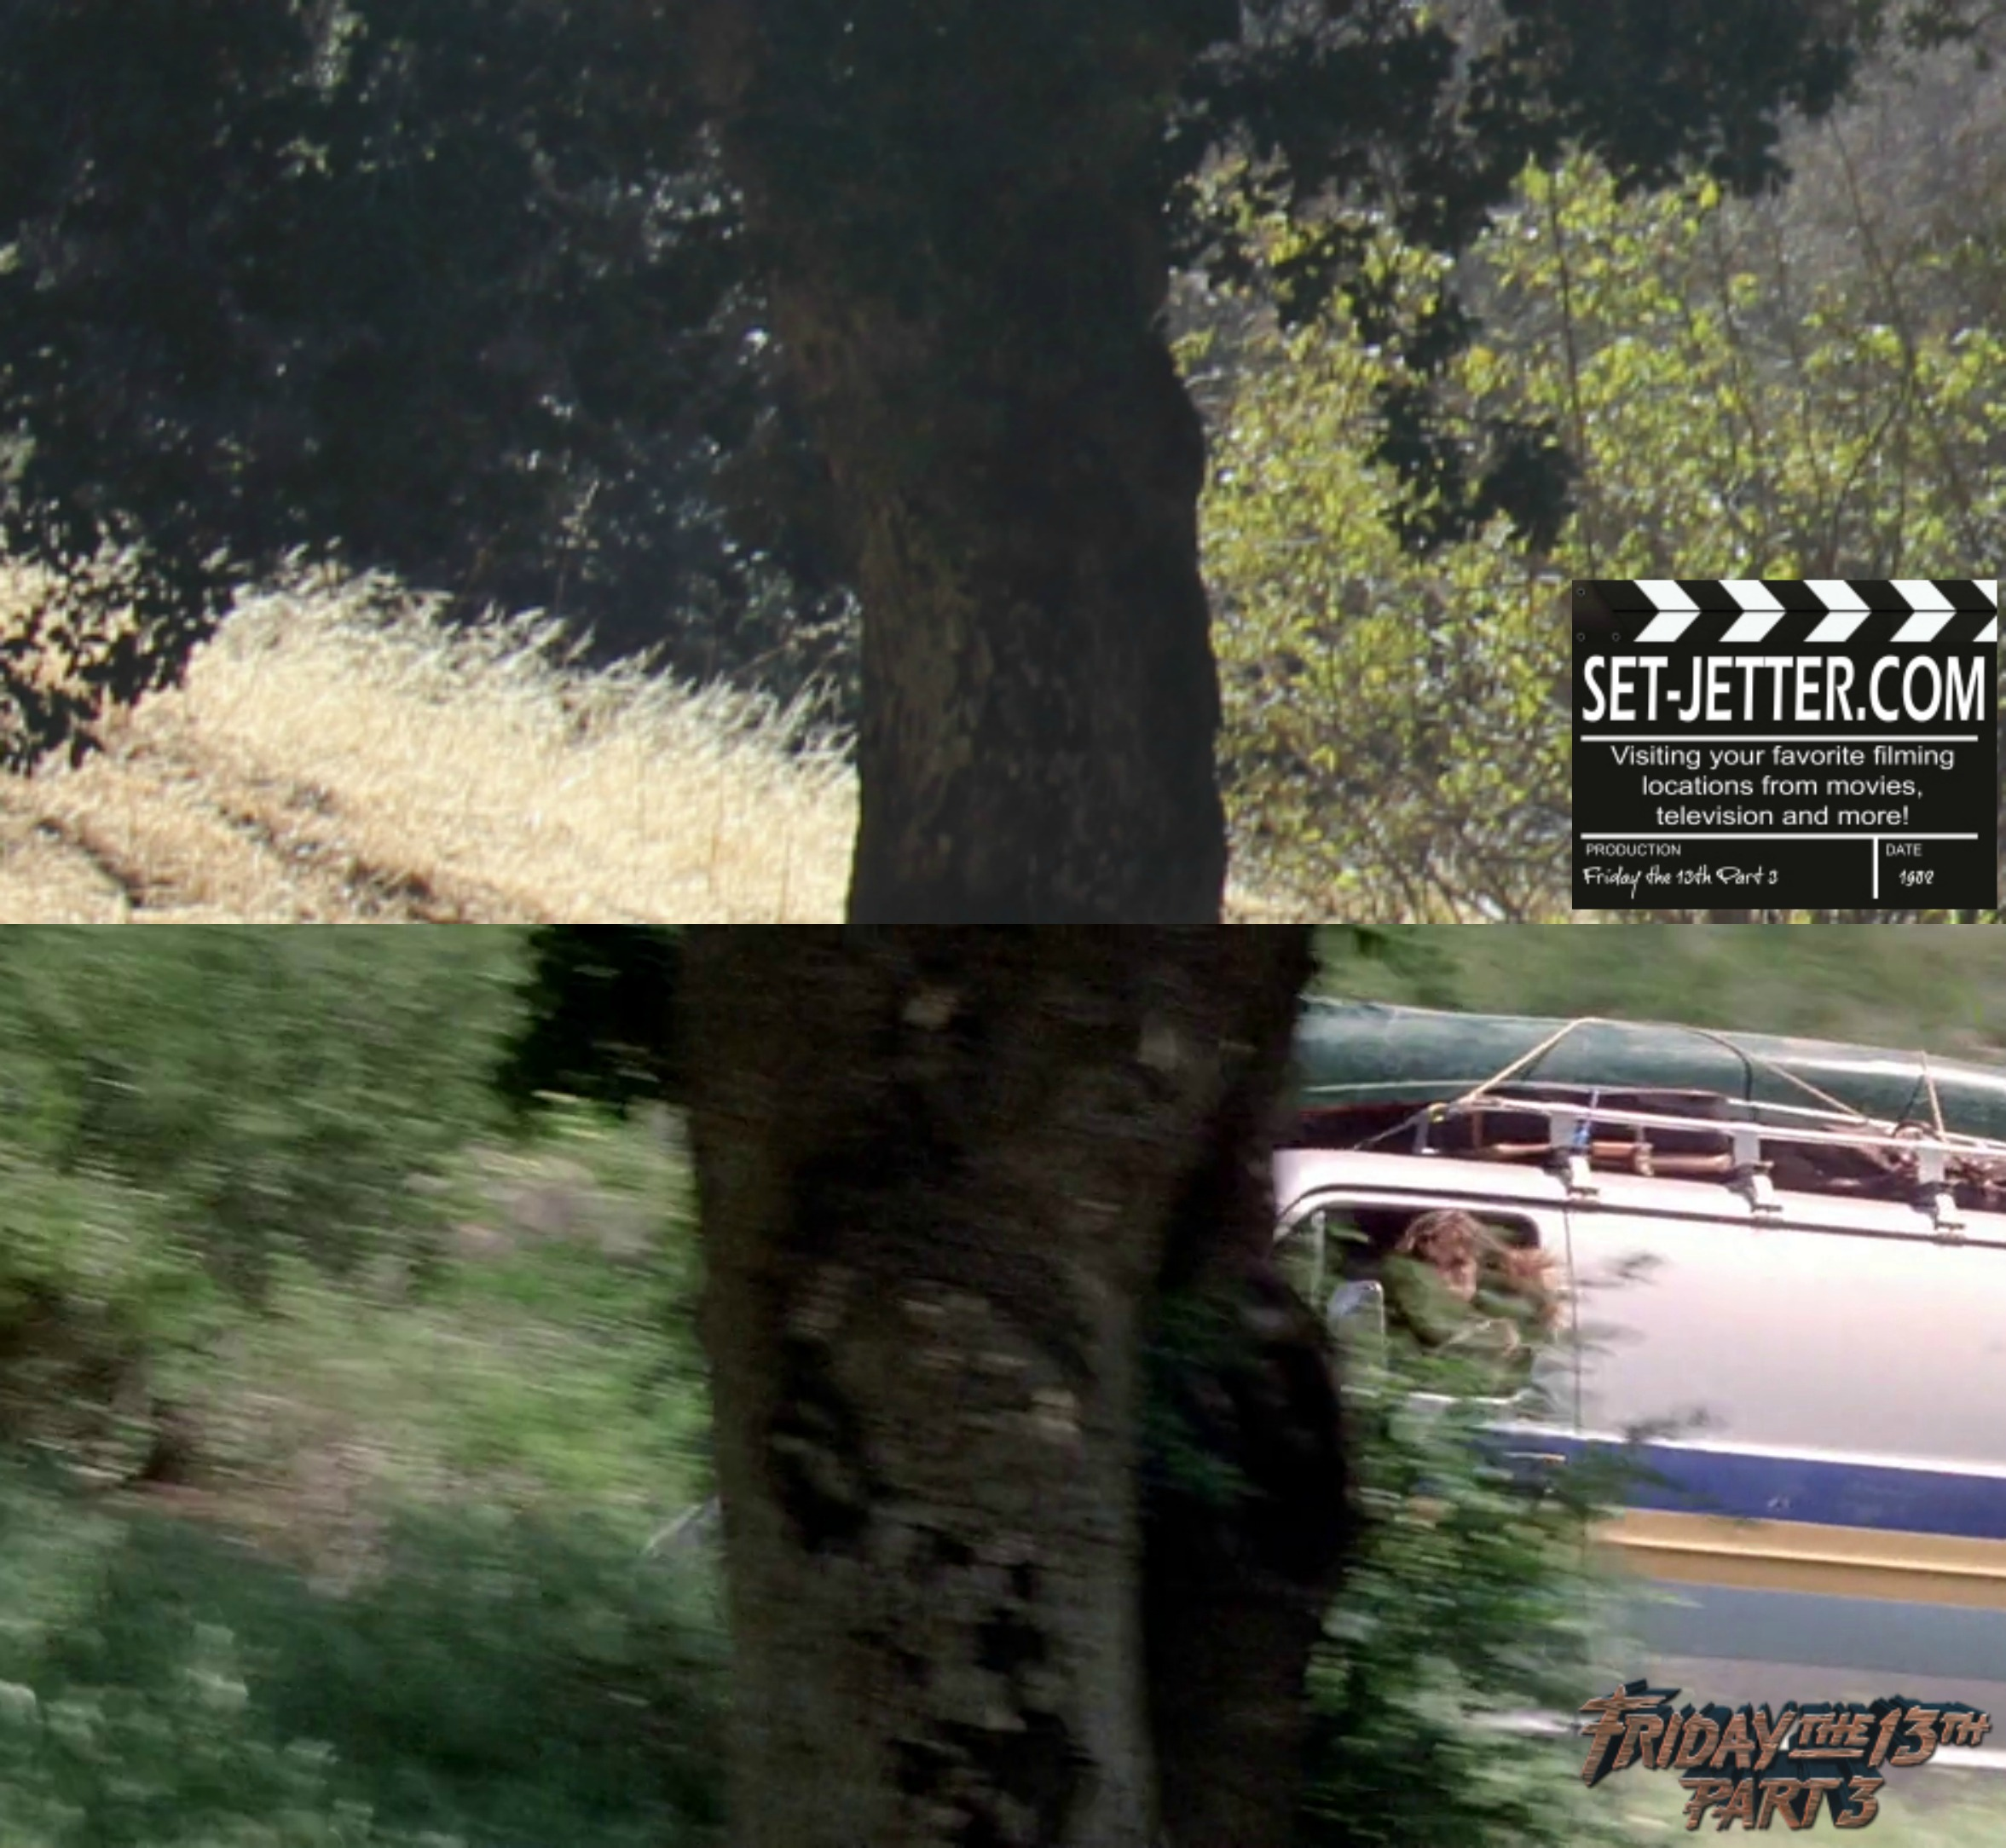 Friday the 13th Part 3 comparison 221.jpg